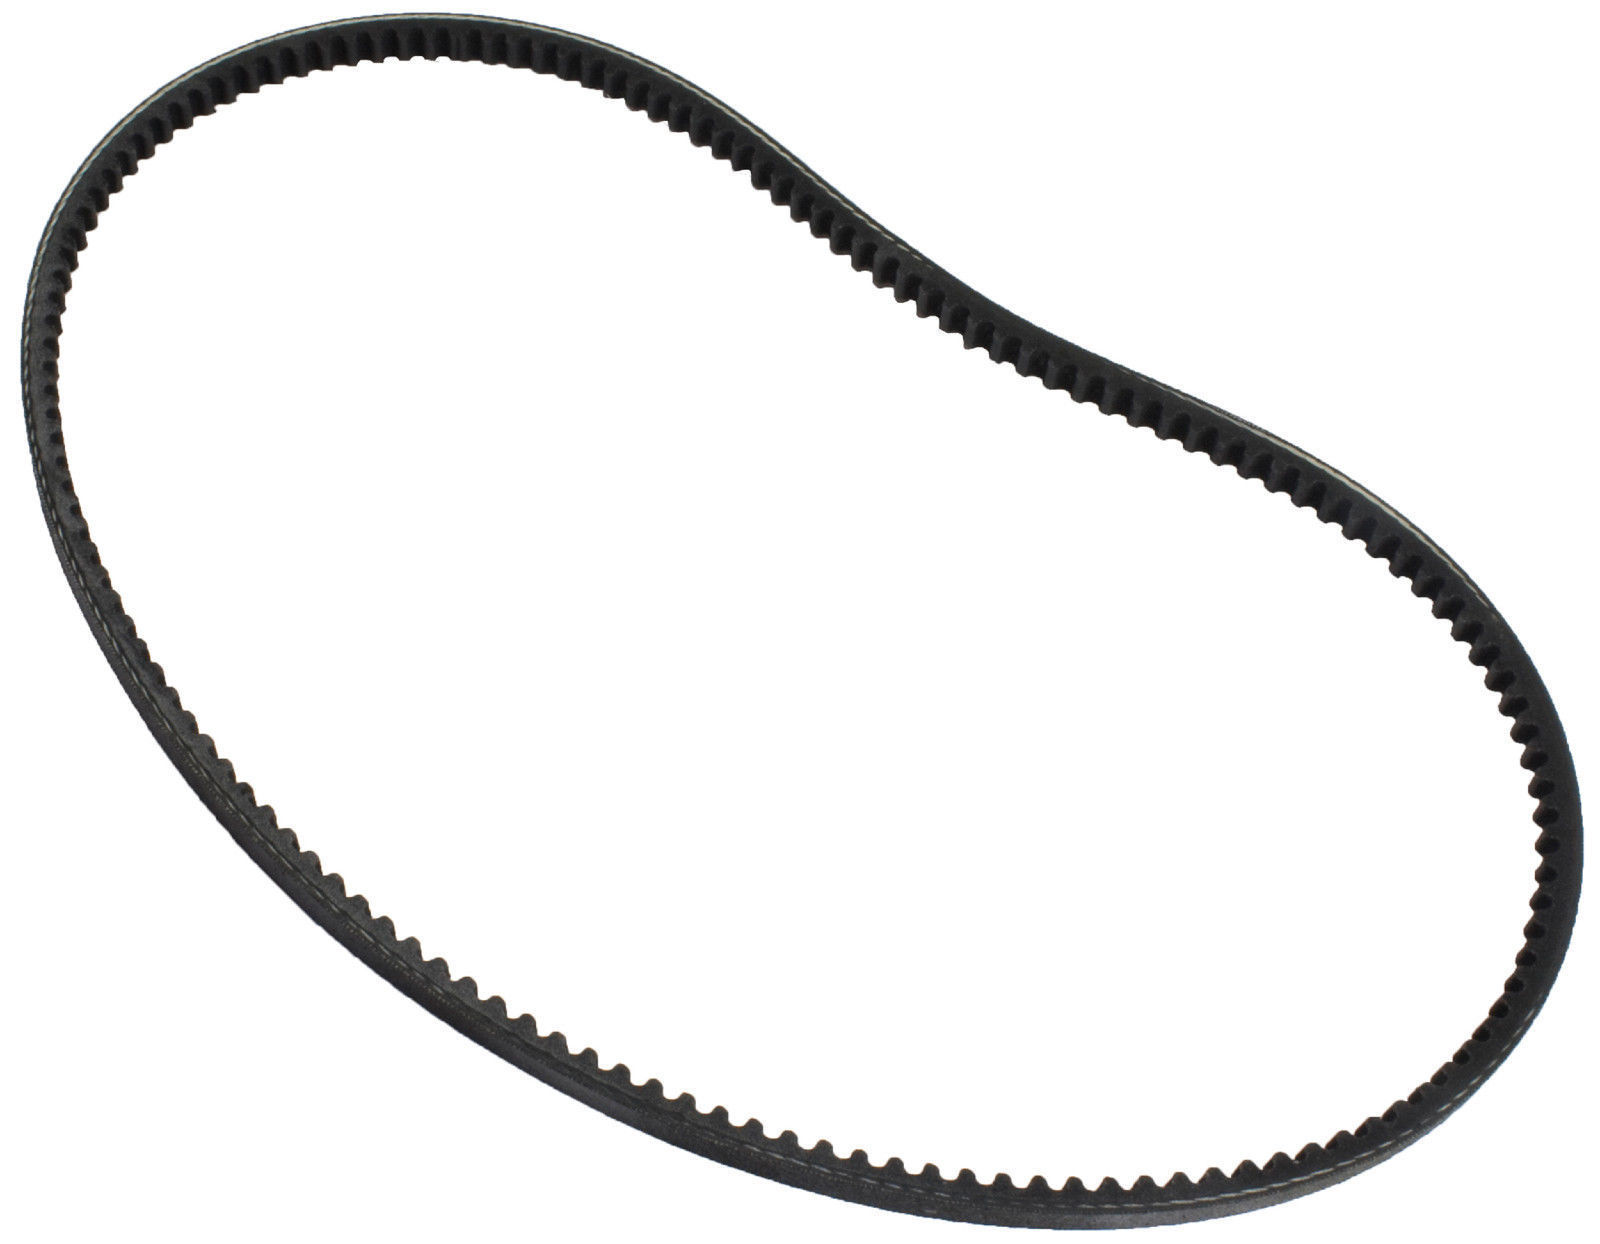 Atco/ Qualcast/ Suffolk Punch Lawnmower Drive Belt Part No F016A